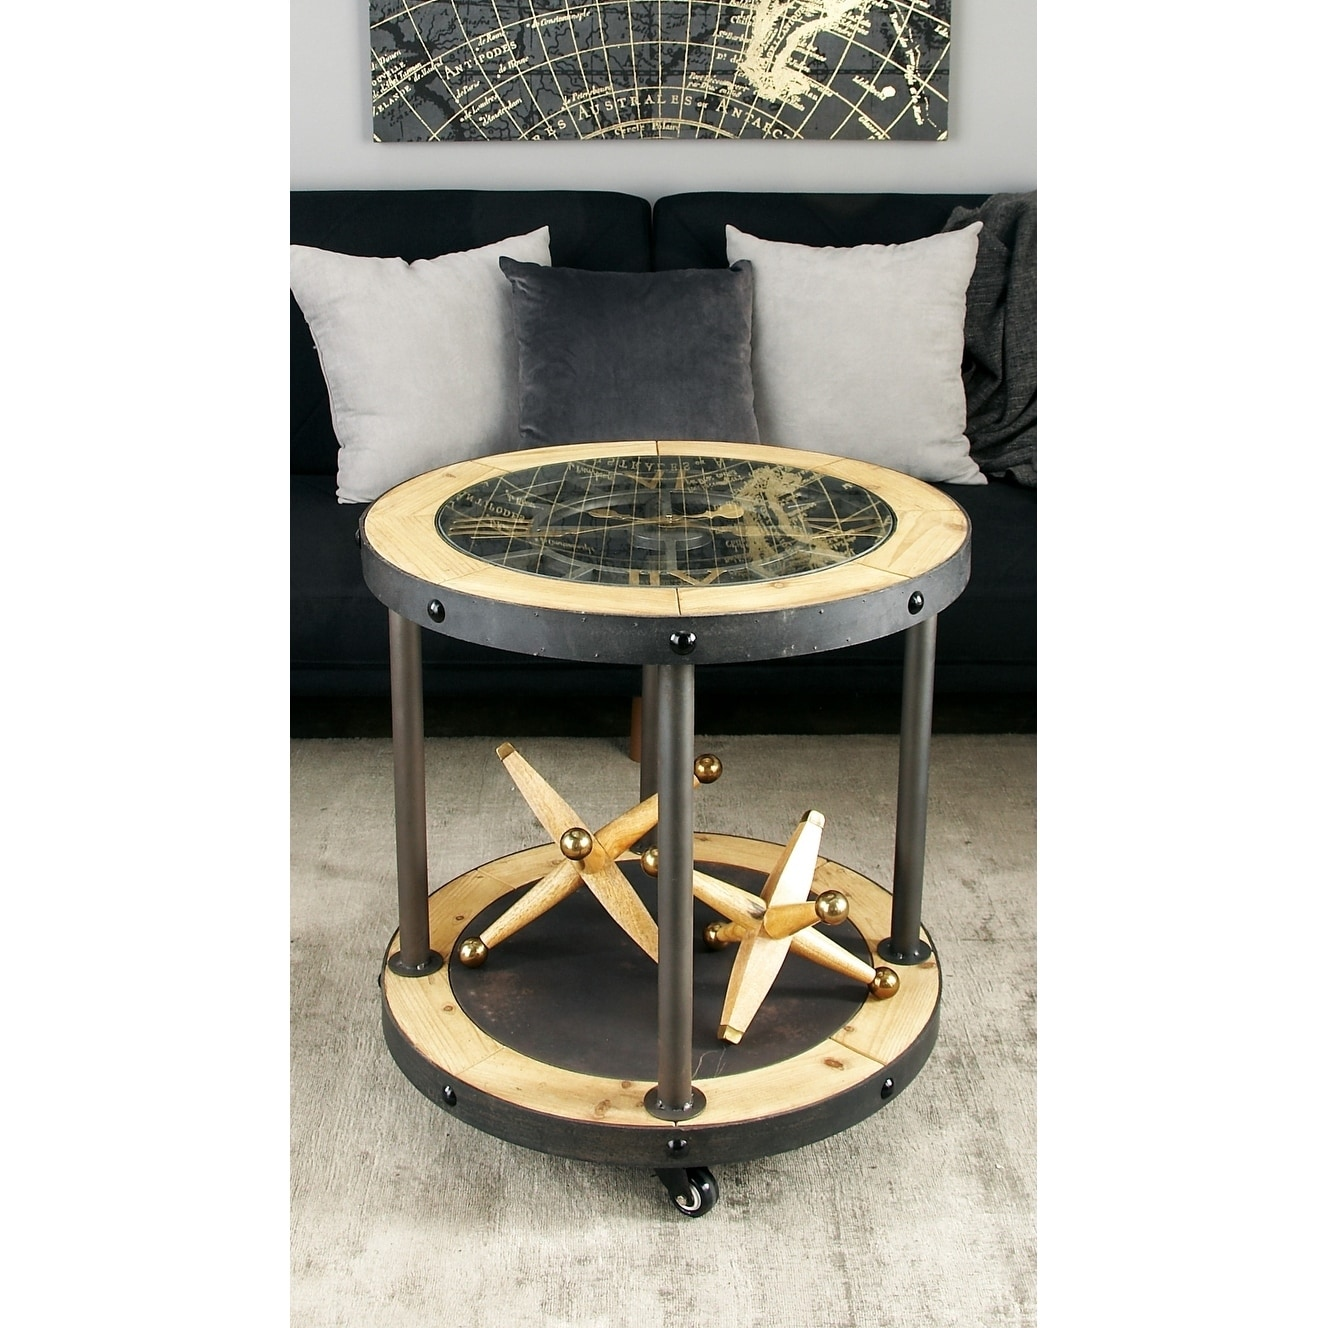 Bon Shop Industrial 25 X 24 Inch Metal And Wood Clock Side Table By Studio 350    Free Shipping Today   Overstock   13034433